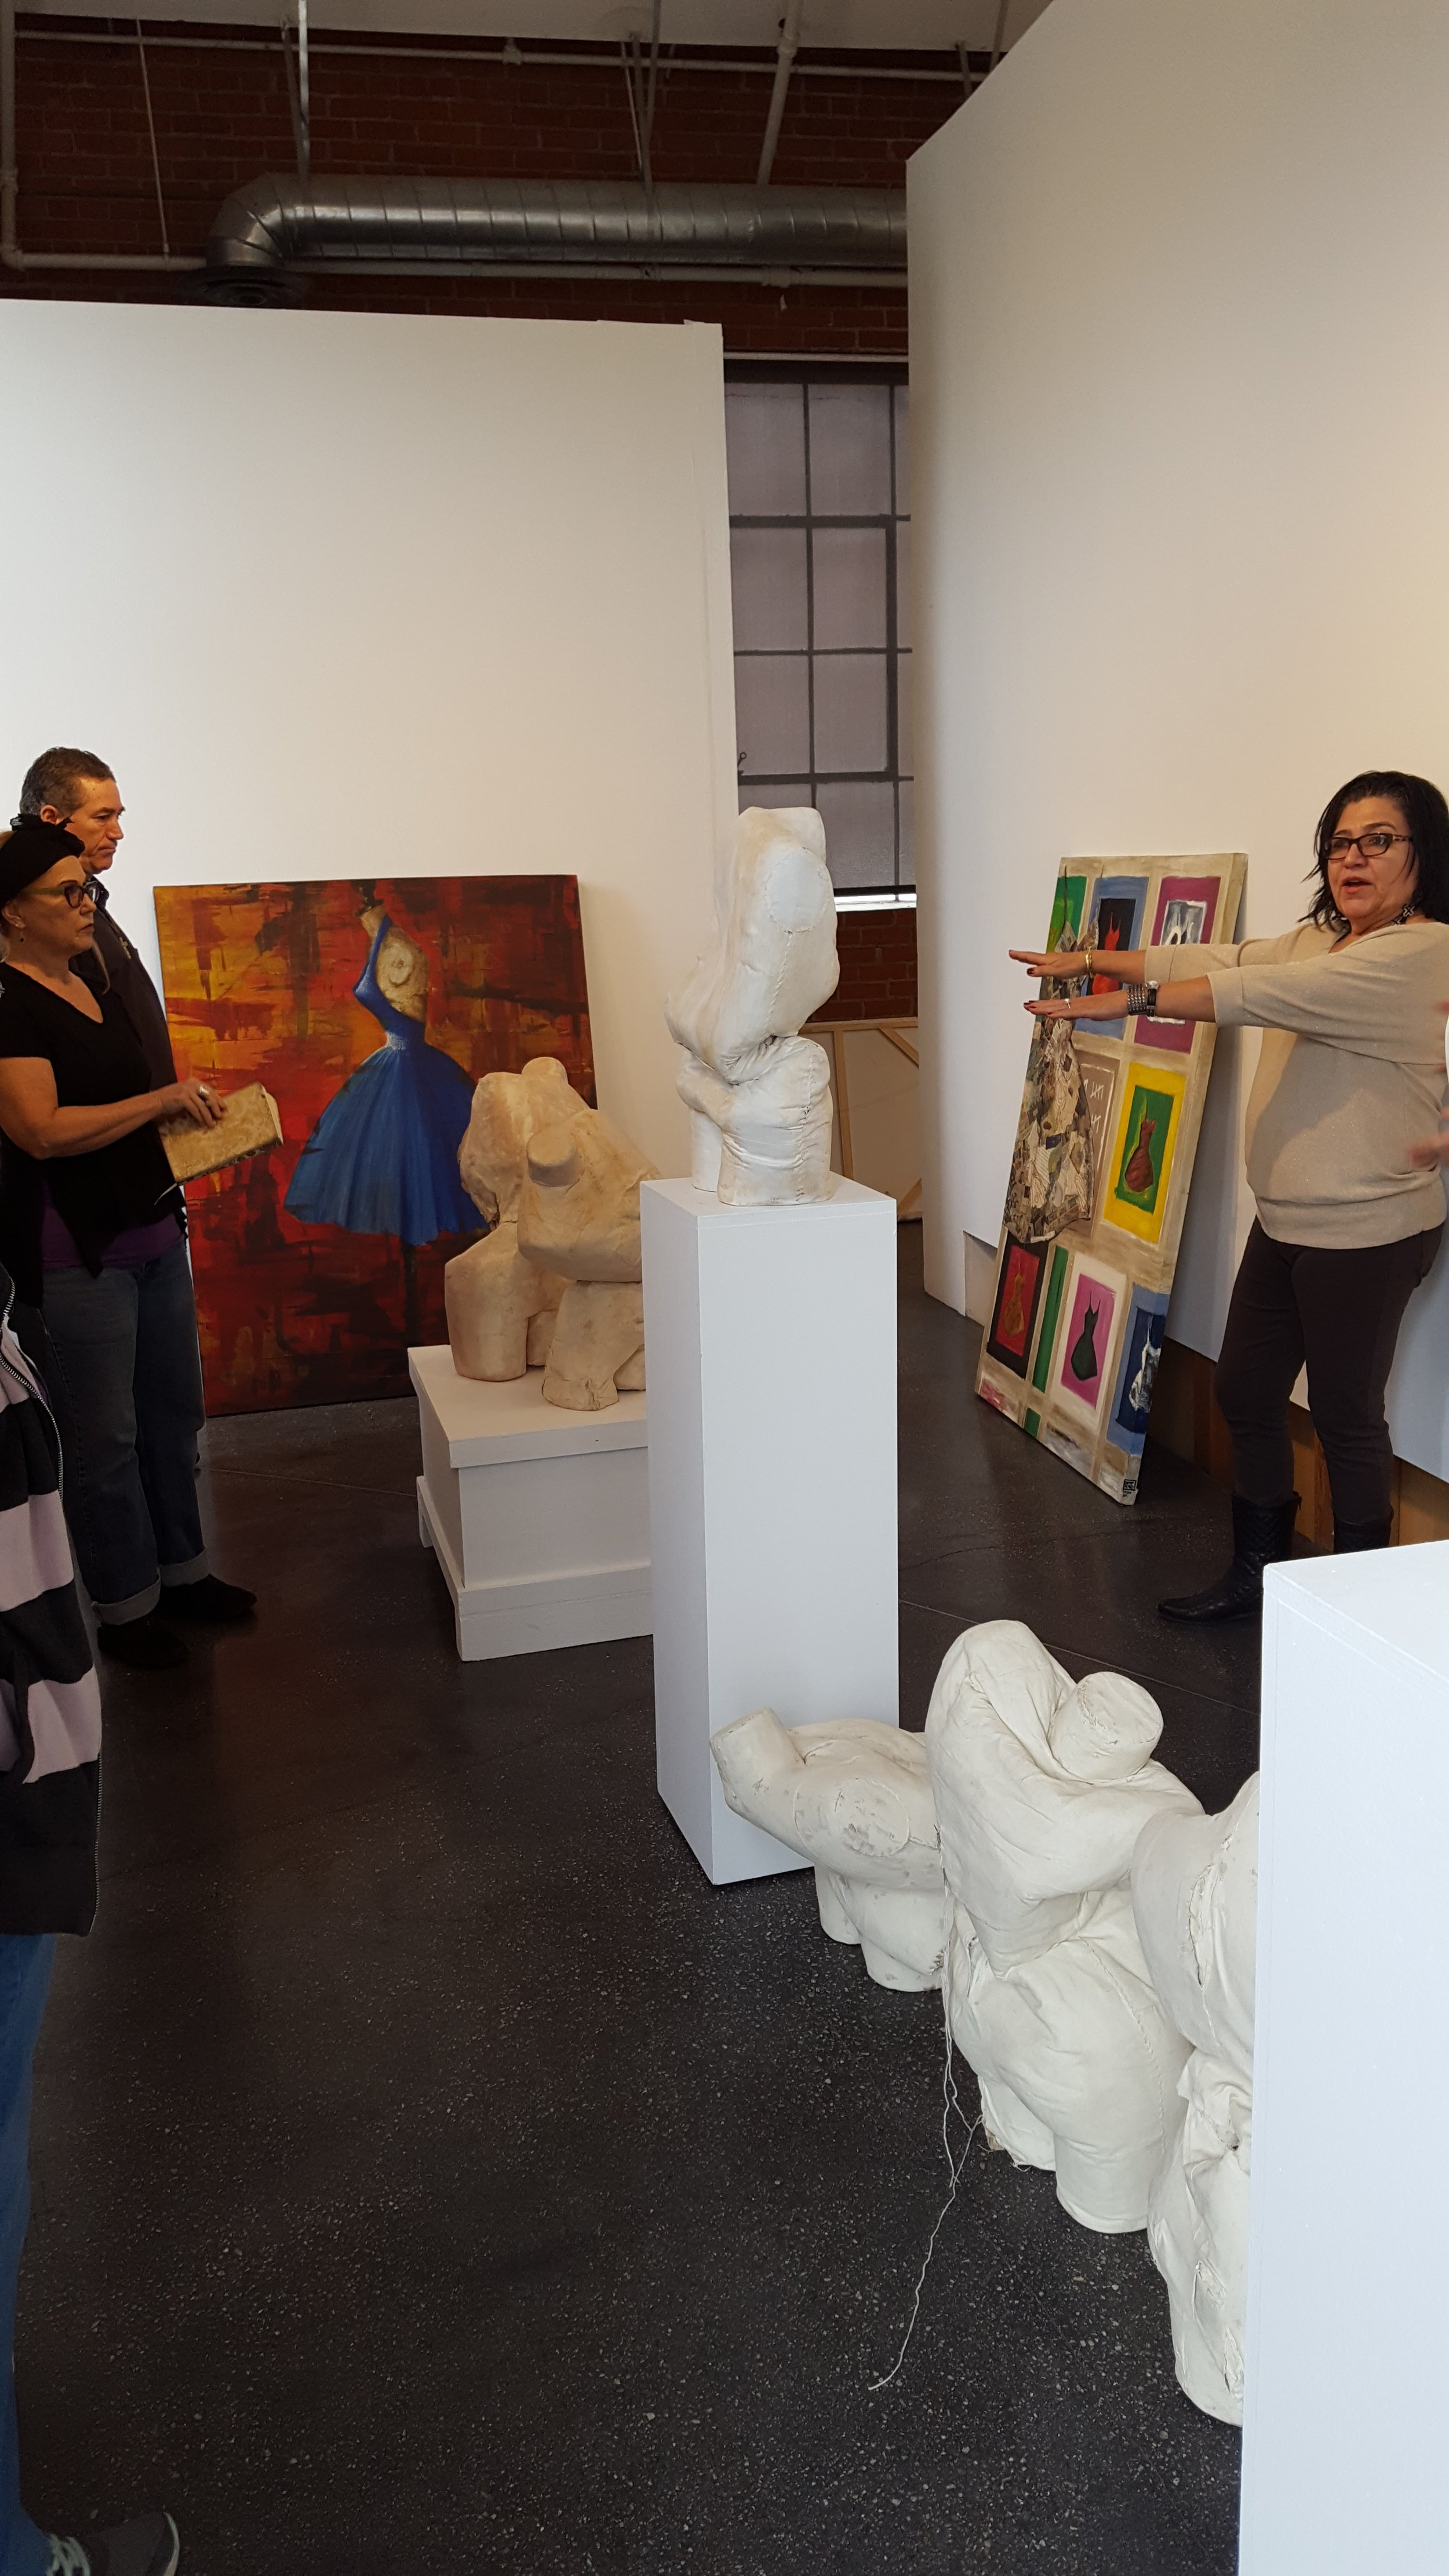 Curator Linda Vallejo (right) giving critique and instructing us where to put what. Artwork by Dawn Marie Forsyth (left with book).|  Photo credit: C. Rasmussen.